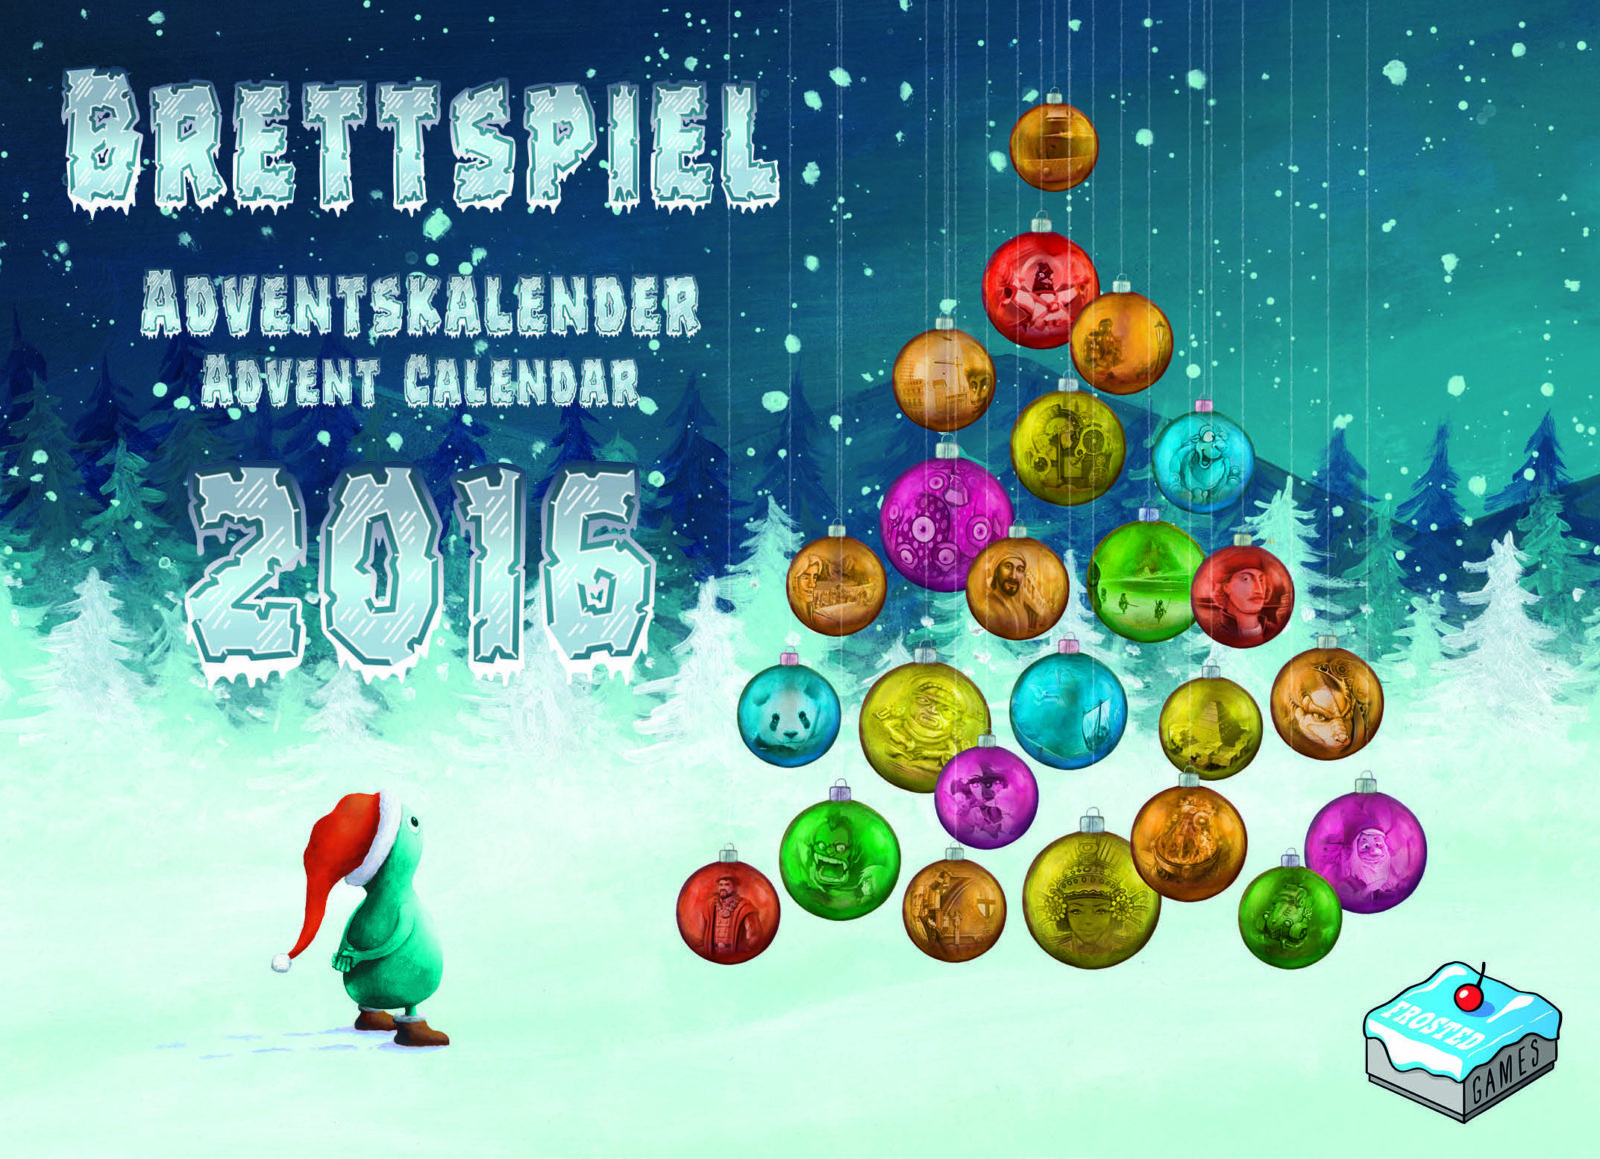 Adventskalender Bild Brettspiel Adventskalender 2016 Frosted Games